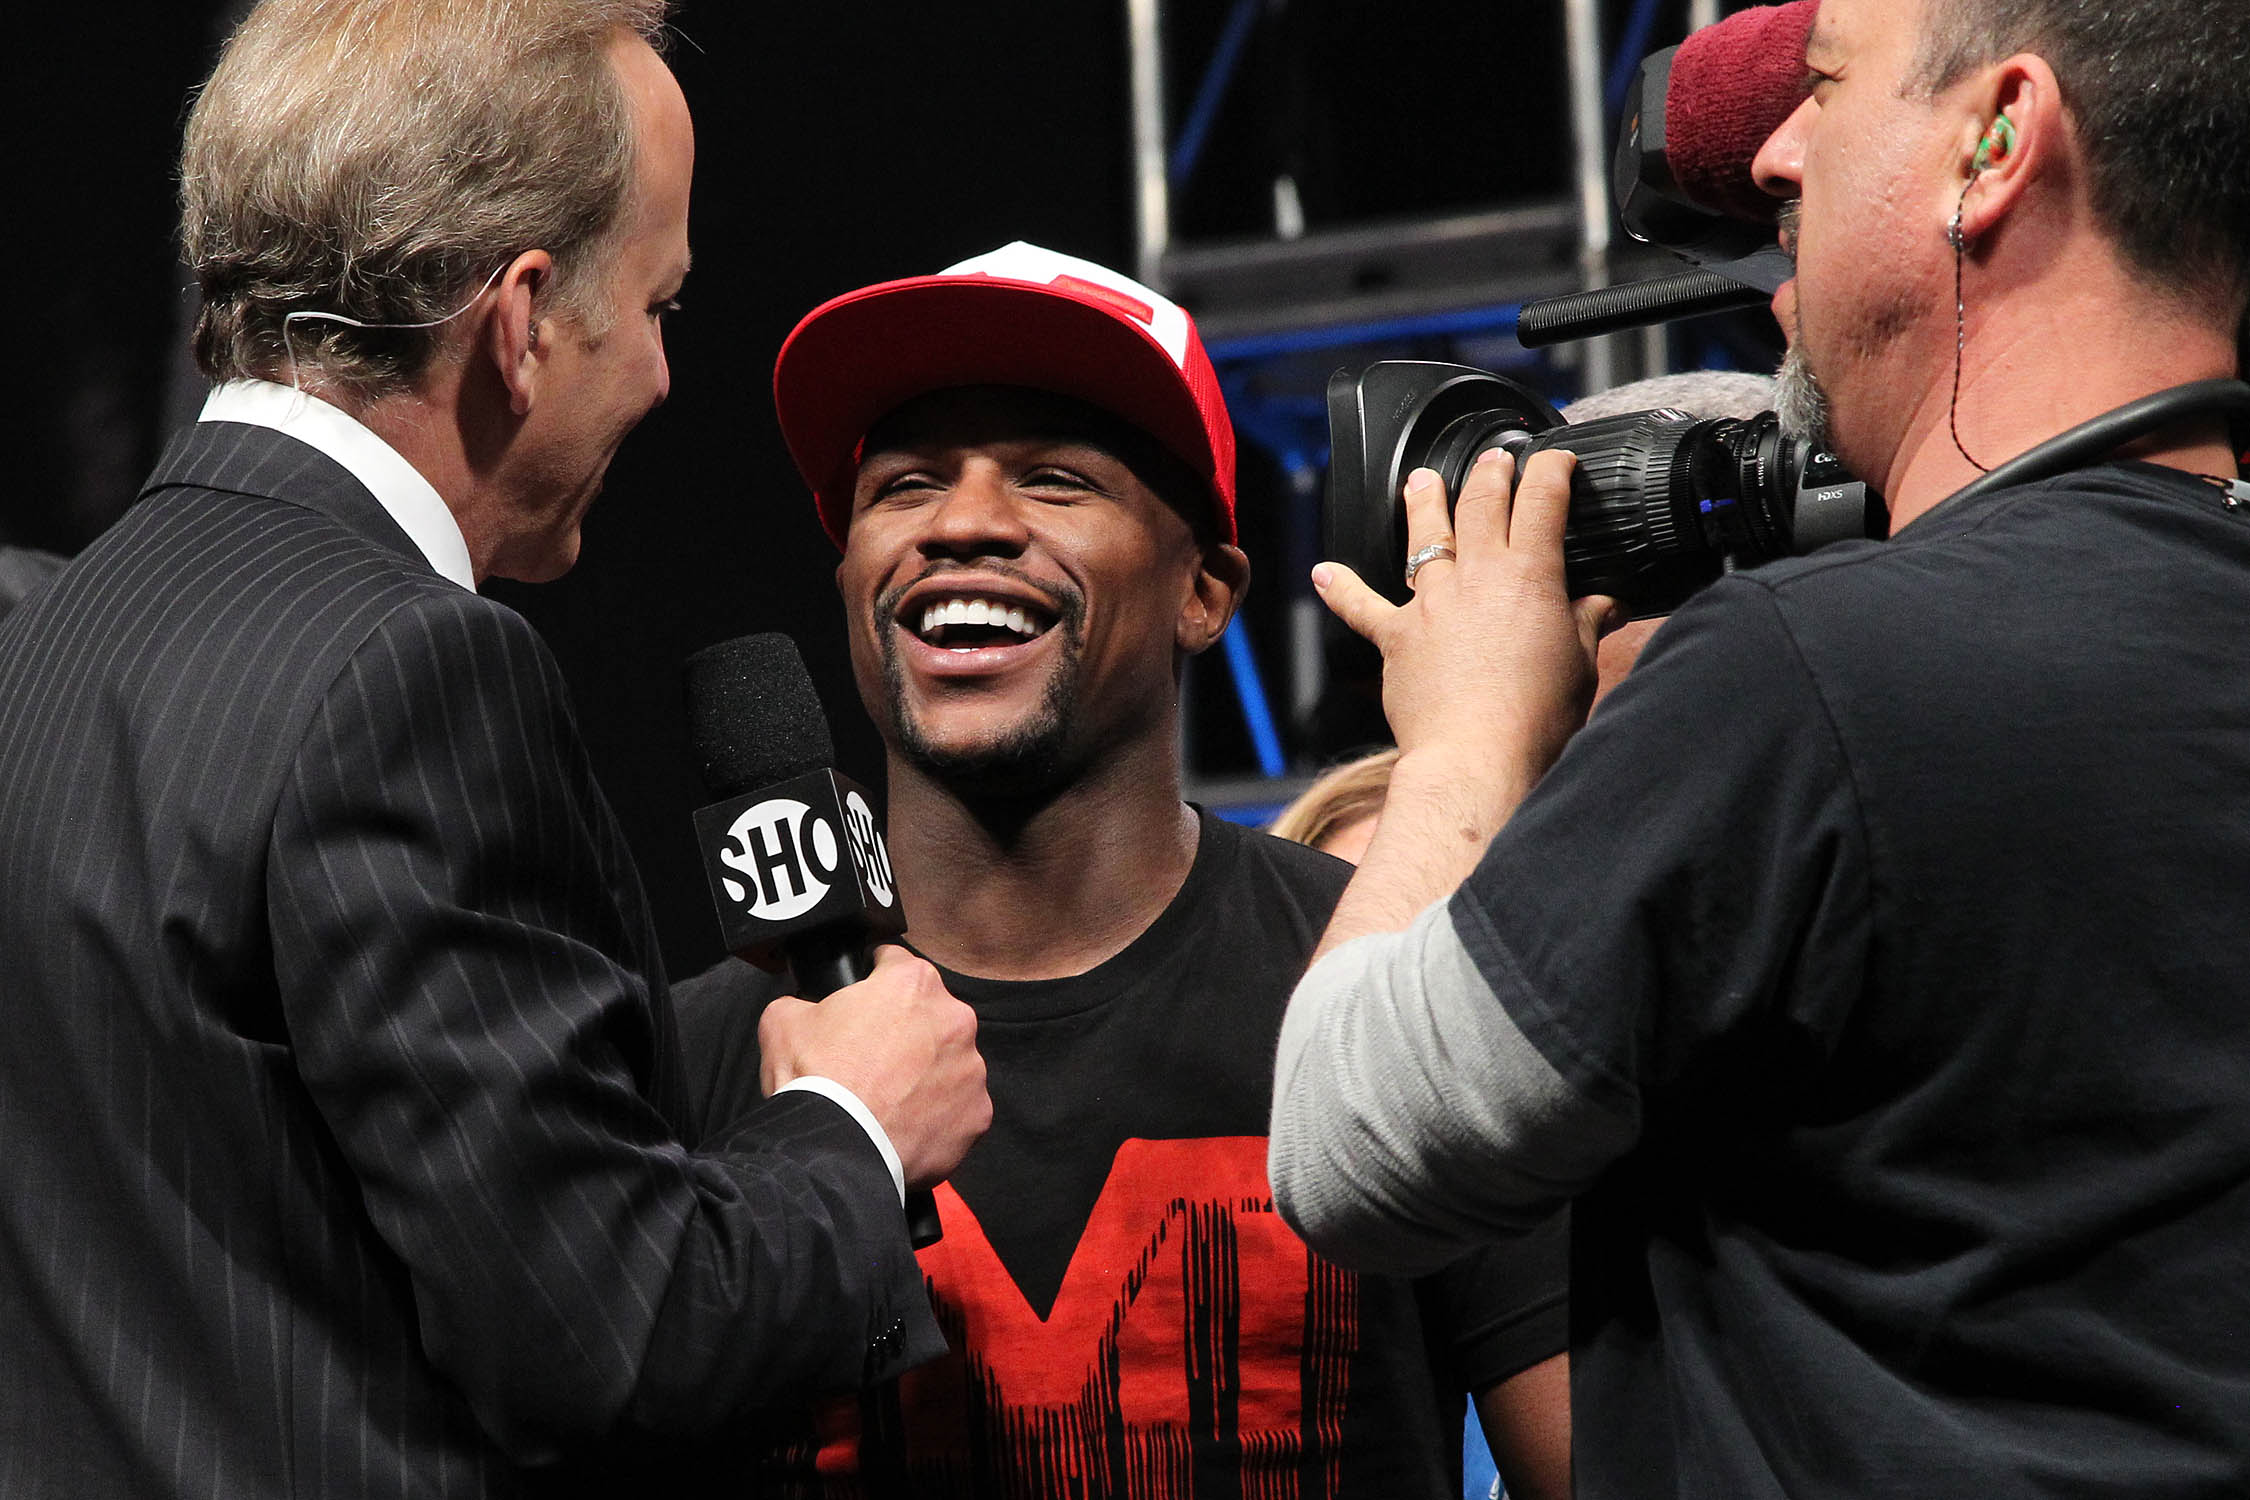 http://www.undisputedfightmag.com/wp-content/uploads/2014/05/006-Mayweather-interview-IMG_8710.jpg